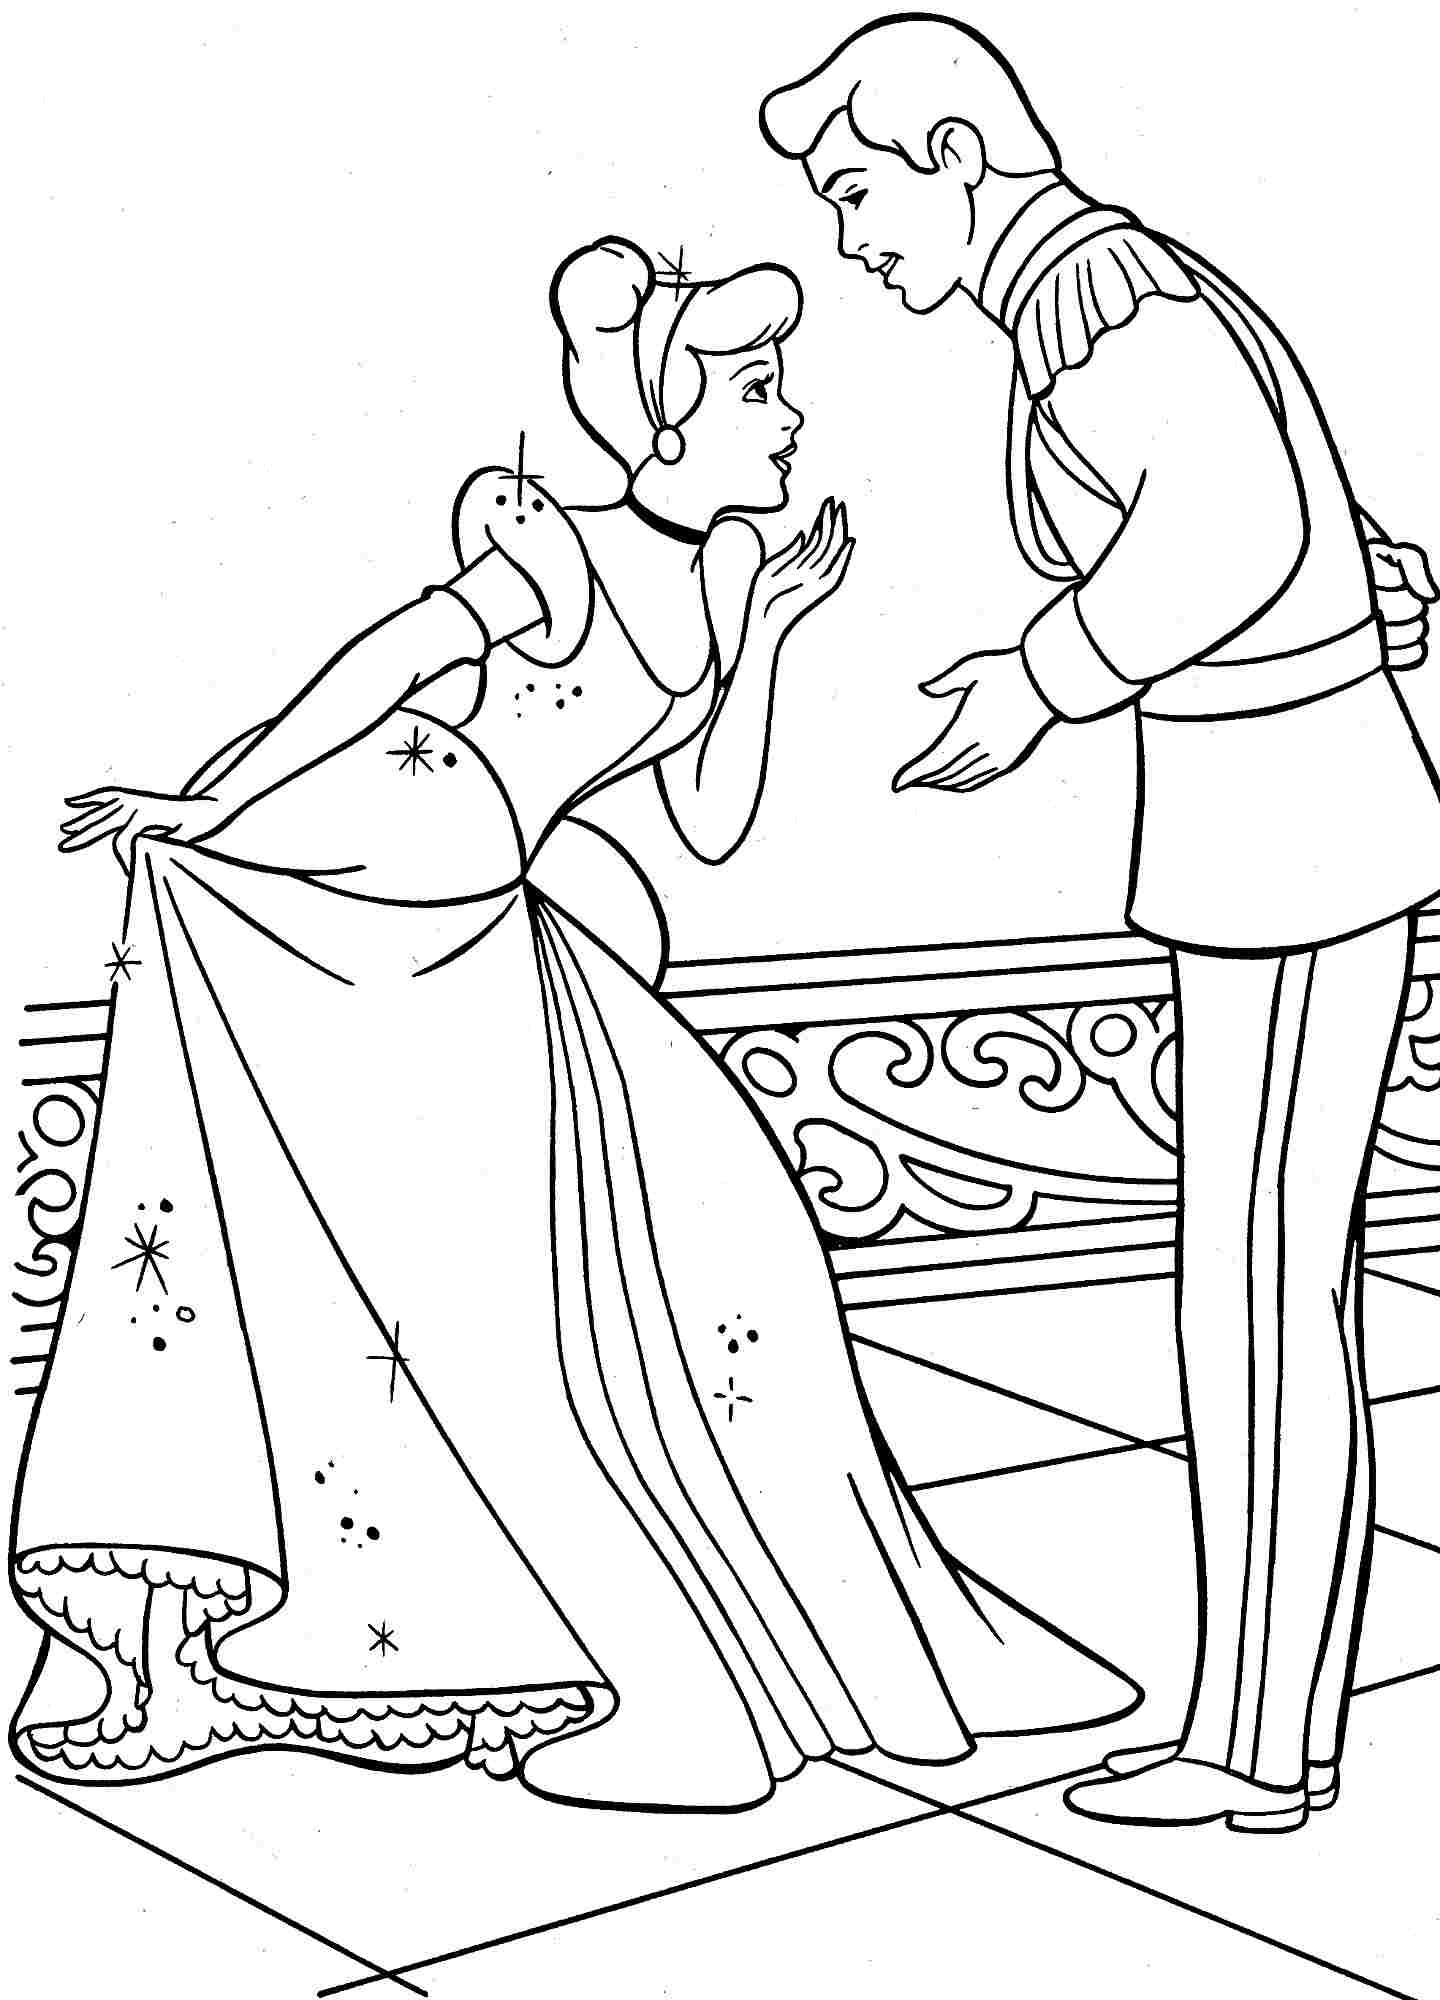 cinderella drawing for coloring cinderella 129576 animation movies printable coloring cinderella coloring drawing for